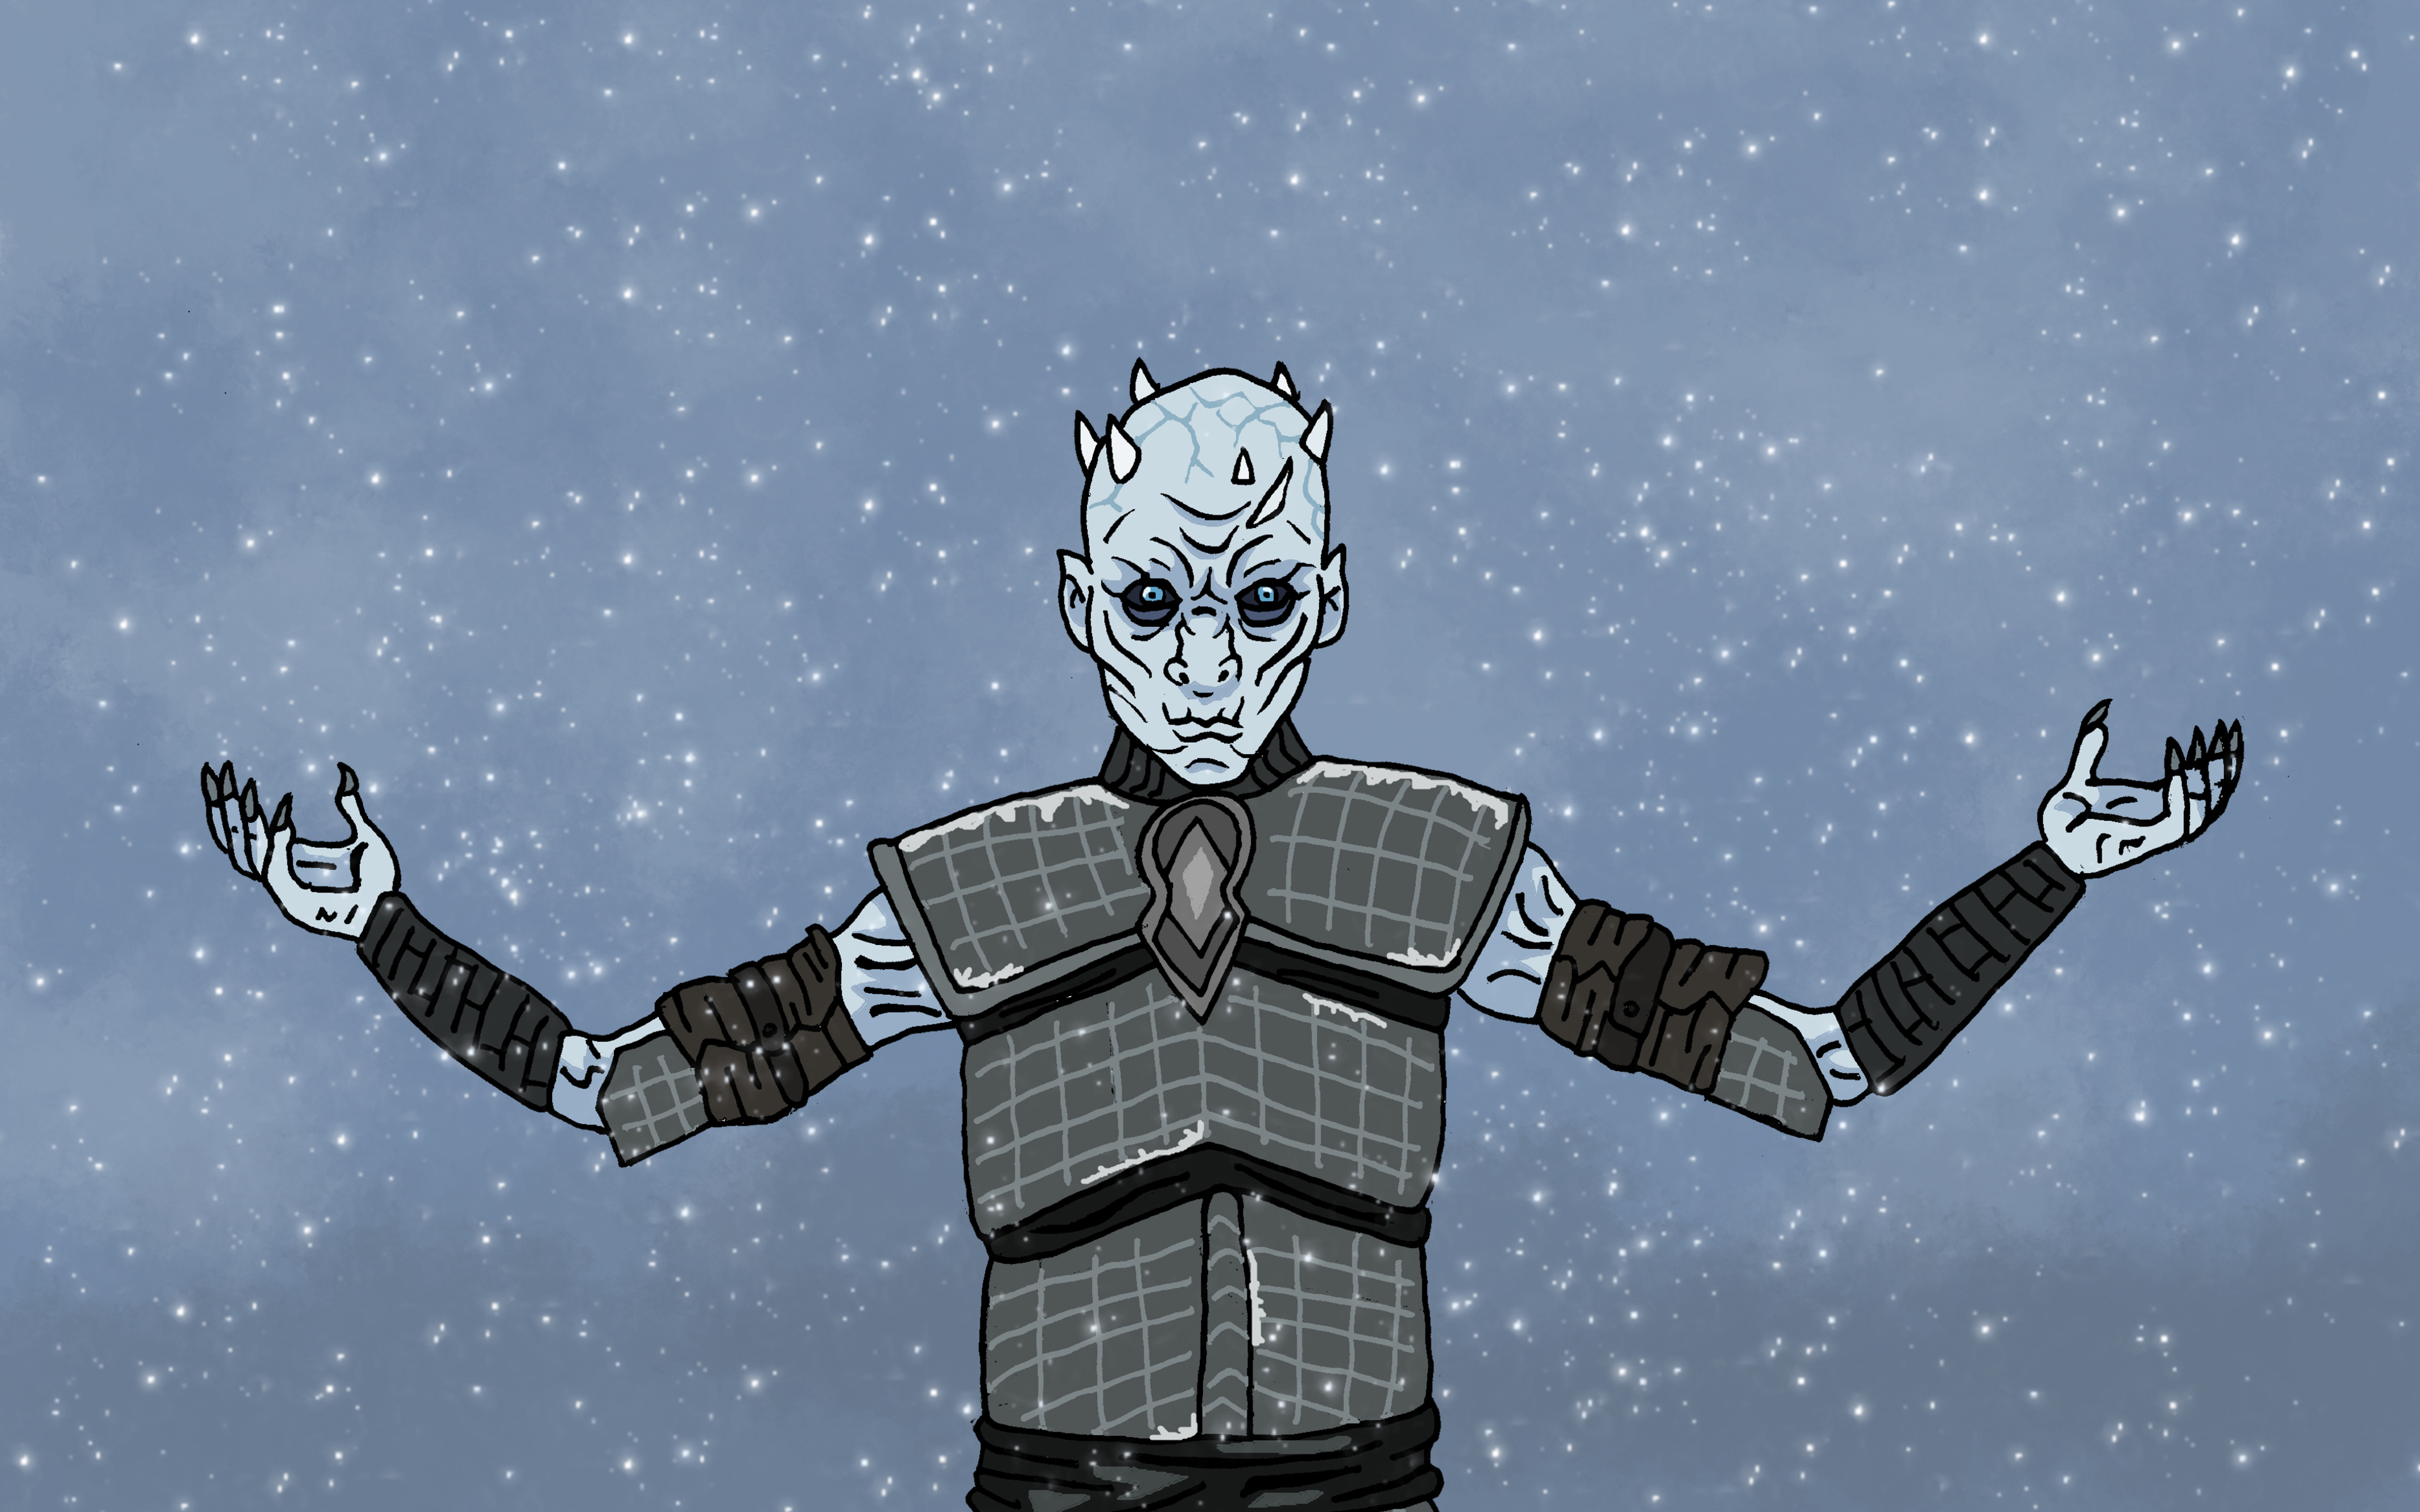 come-at-me-crow-the-night-king-artwork-lv.jpg